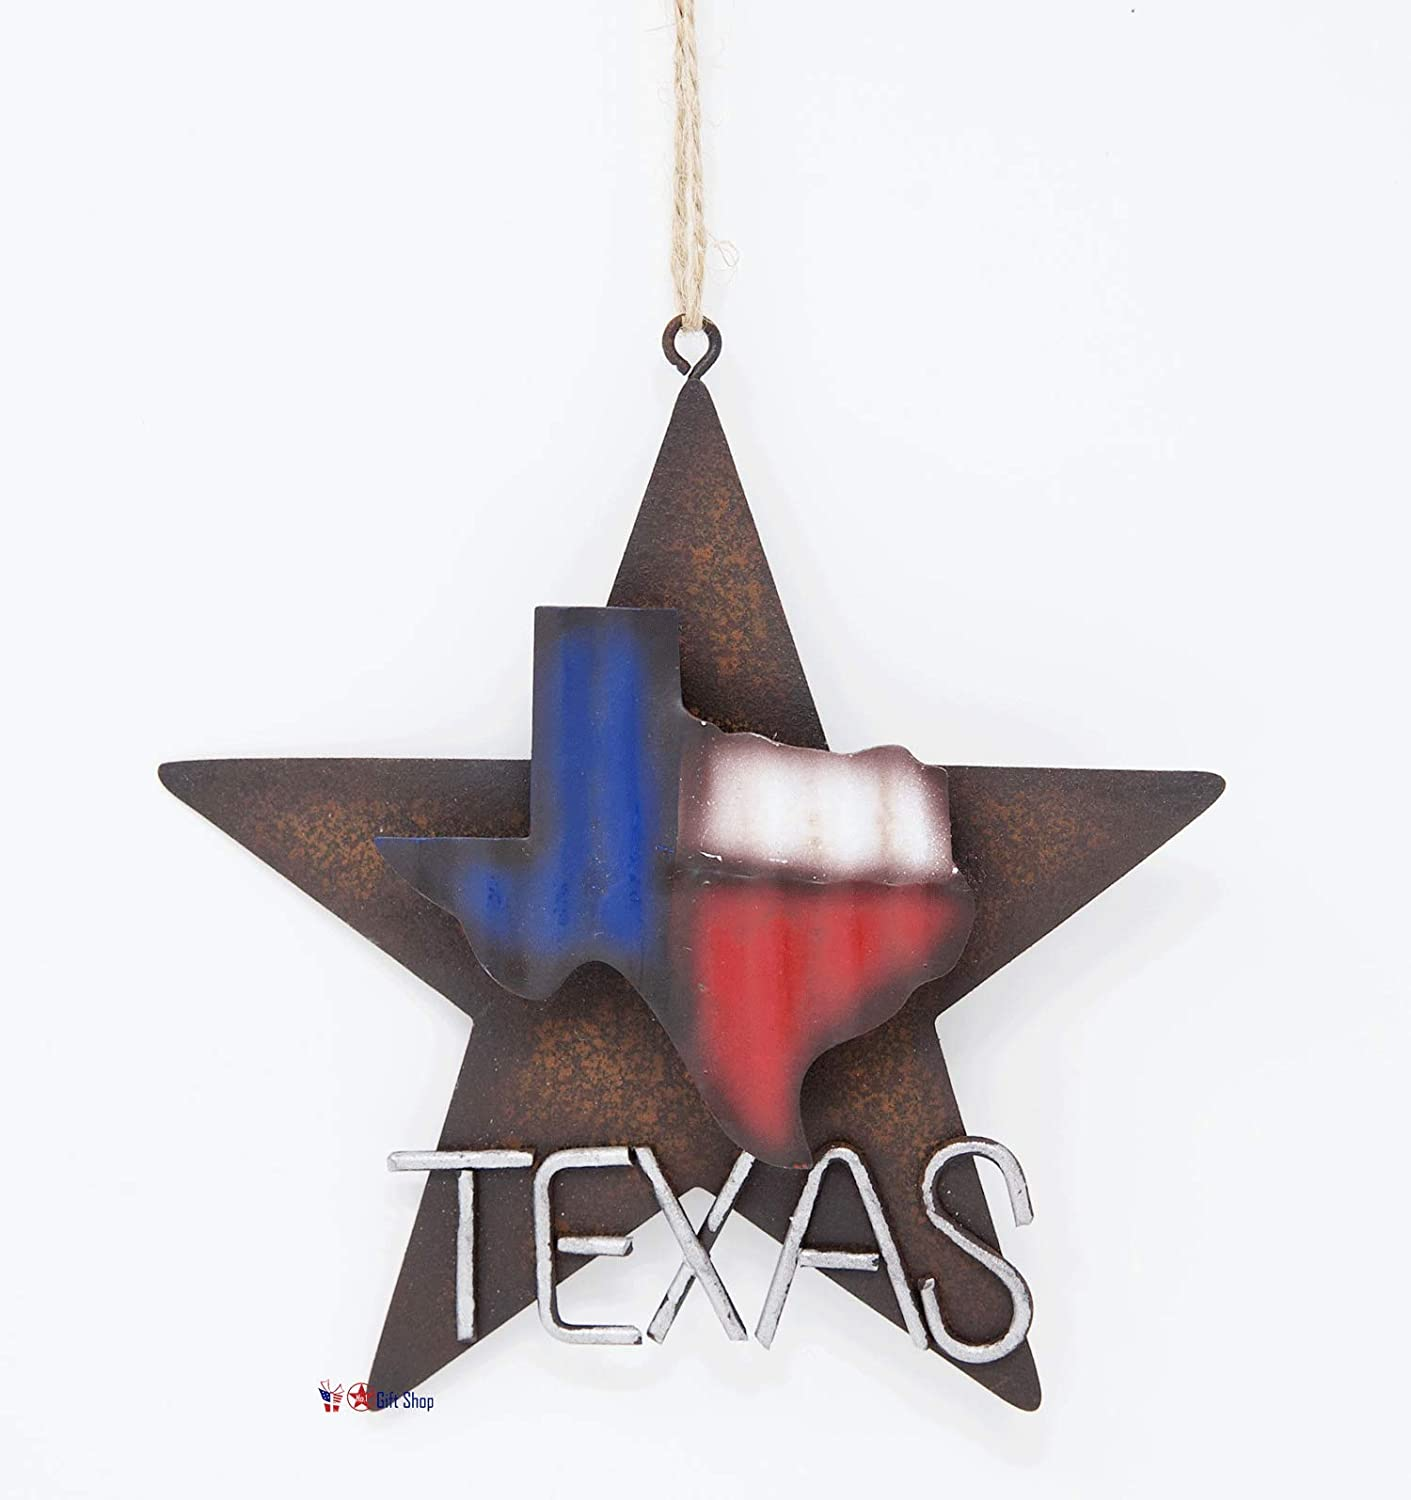 Metal Star with Texas Map Ornament Rustic Style Gift Idea Western Lone Star 3-D Texas Map Christmas Metal/Tin - Tree or Wall Hanging